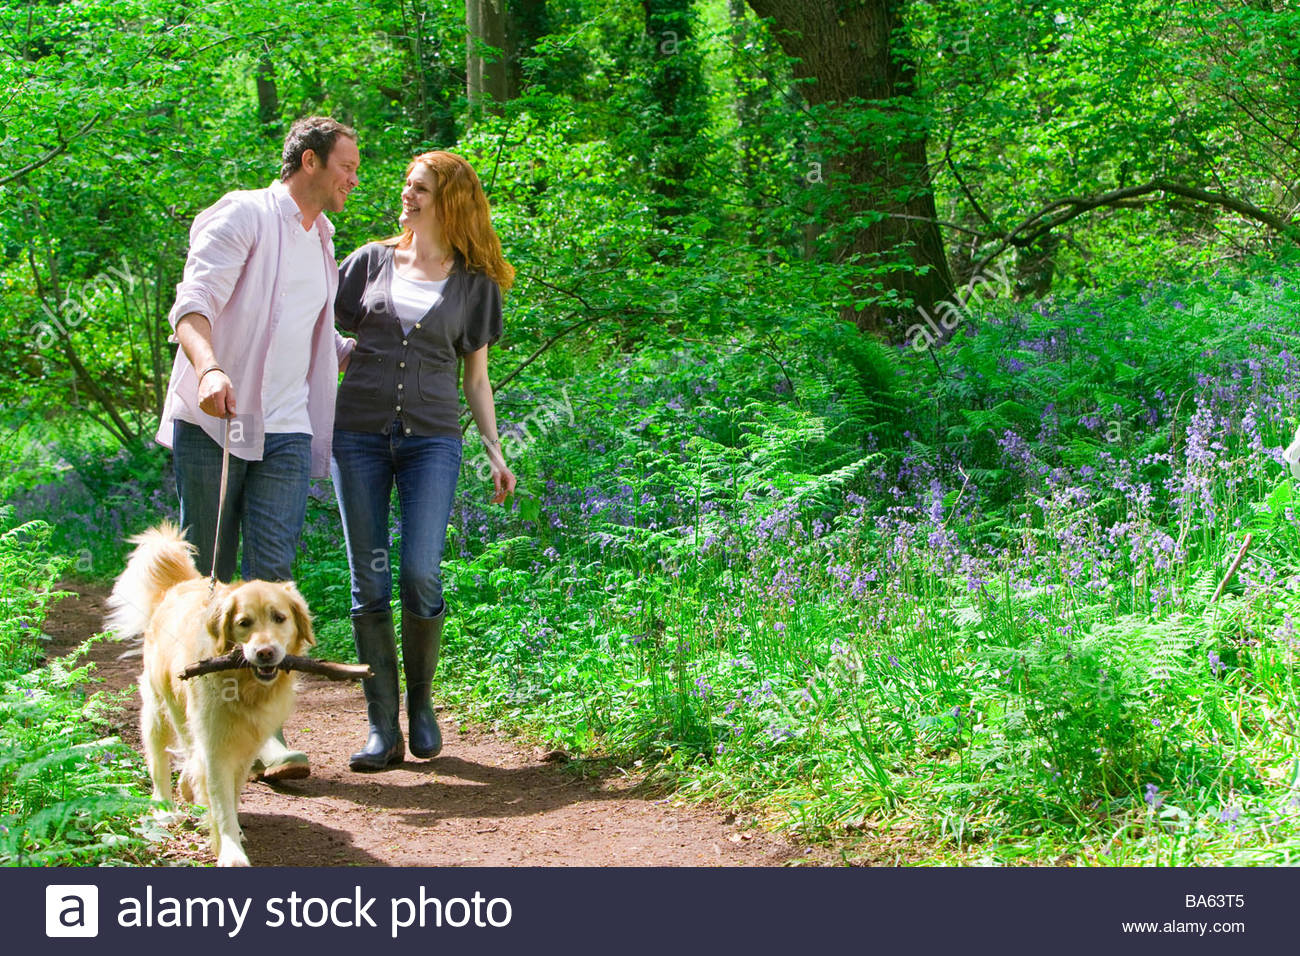 Couple and dog walking in forest among bluebell flowers - Stock Image